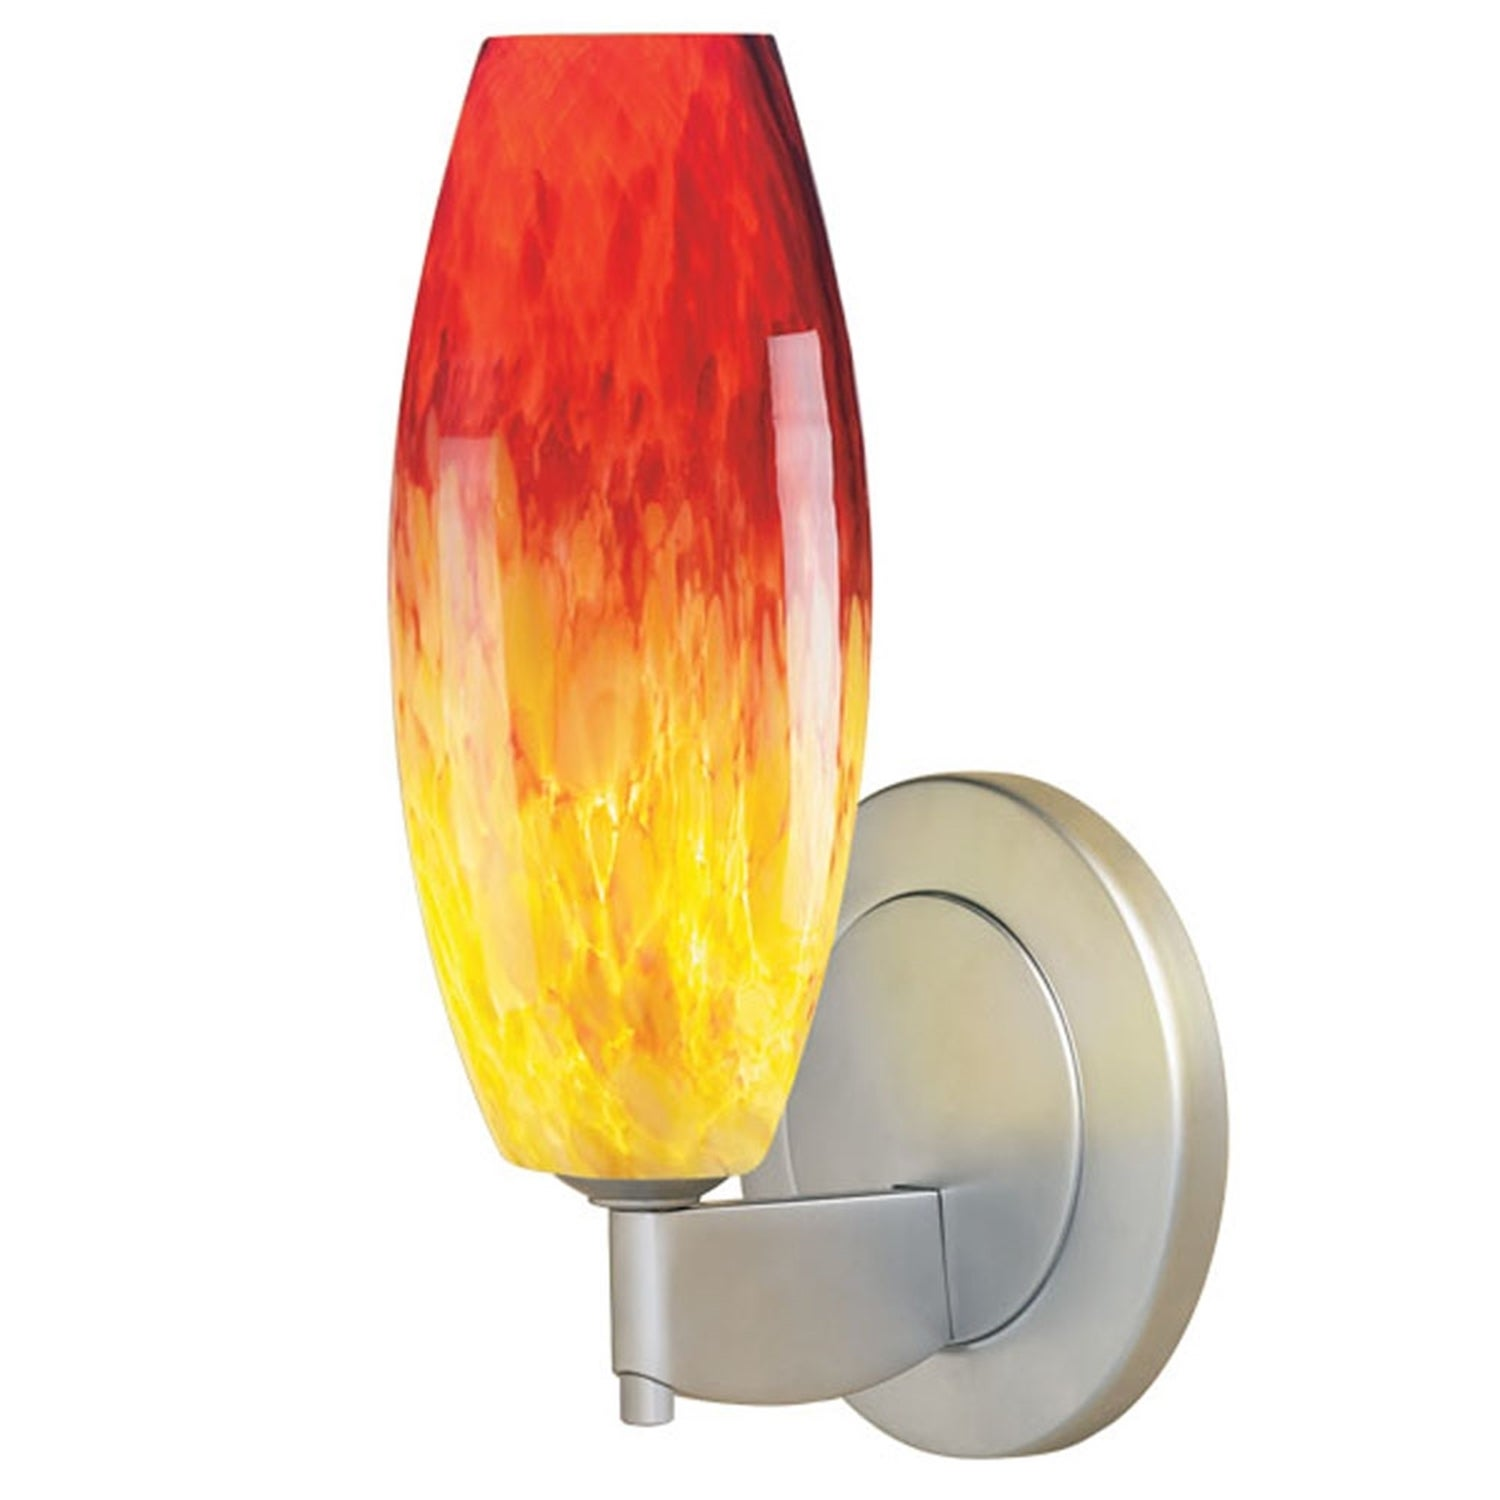 Bruck Lighting Ciro Chrome Yellow and Red Glass Shade Wall Sconce ...